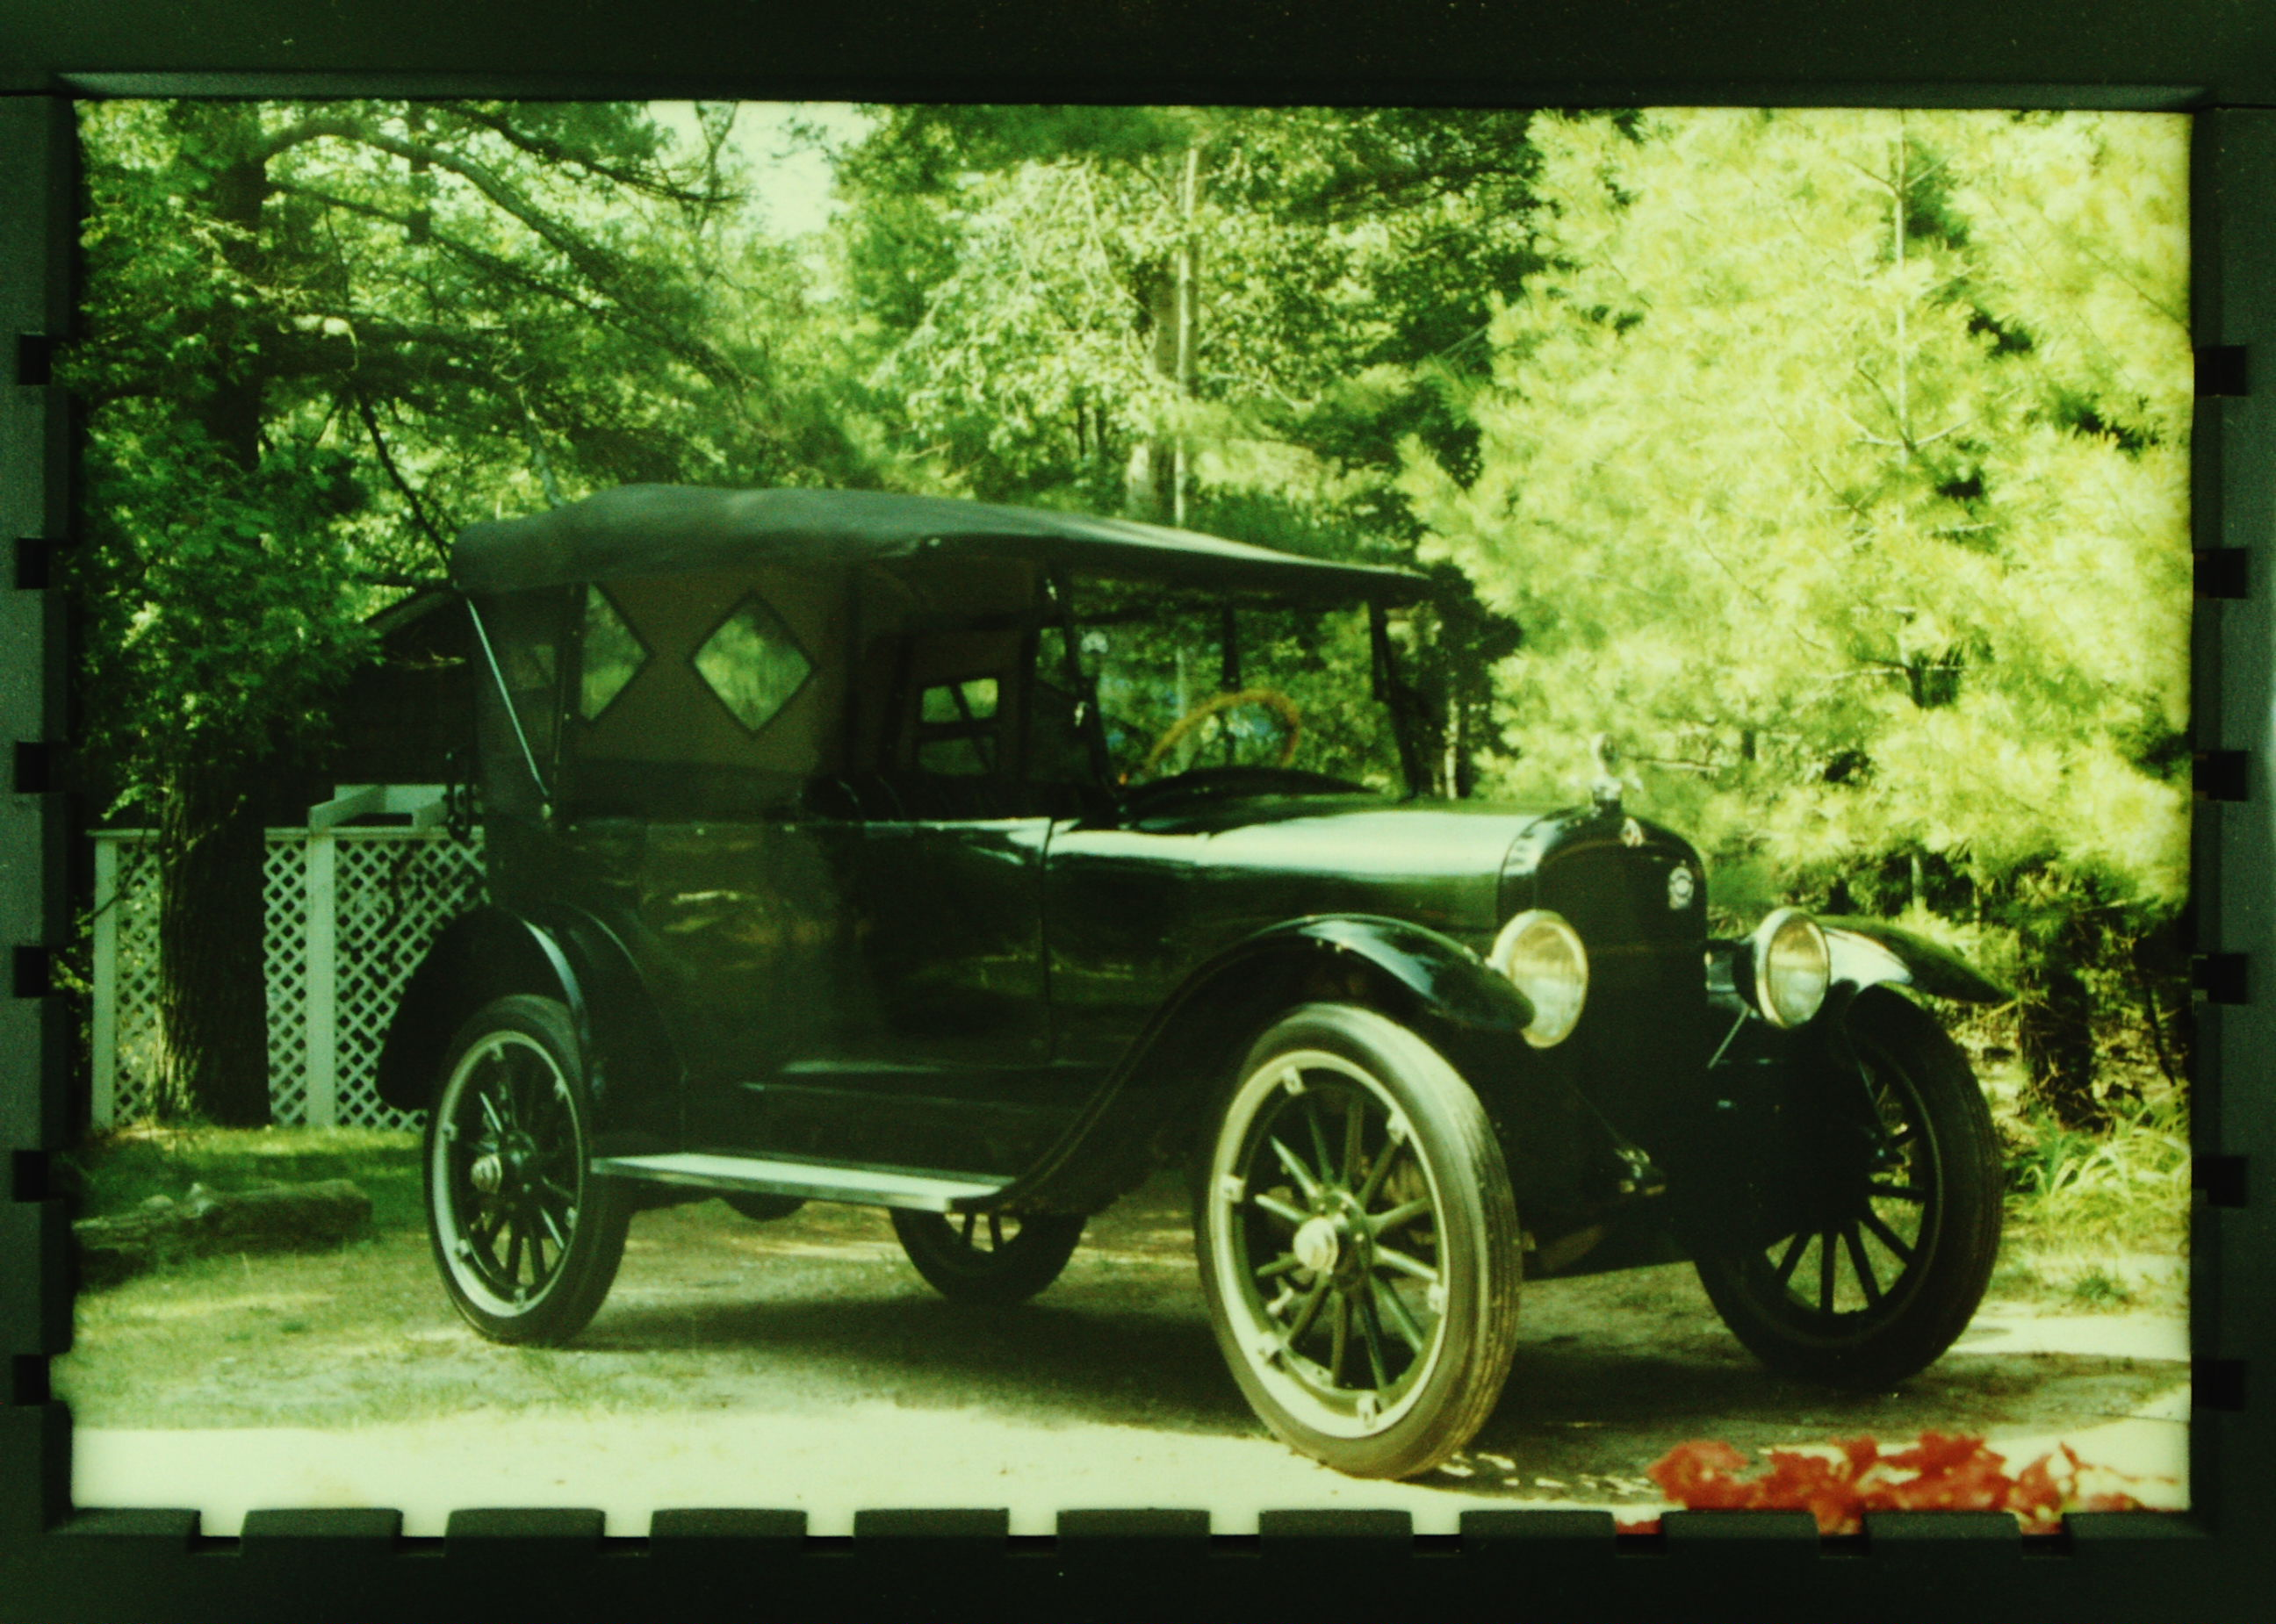 1919 allen car - Cars For Sale - Antique Automobile Club of America ...